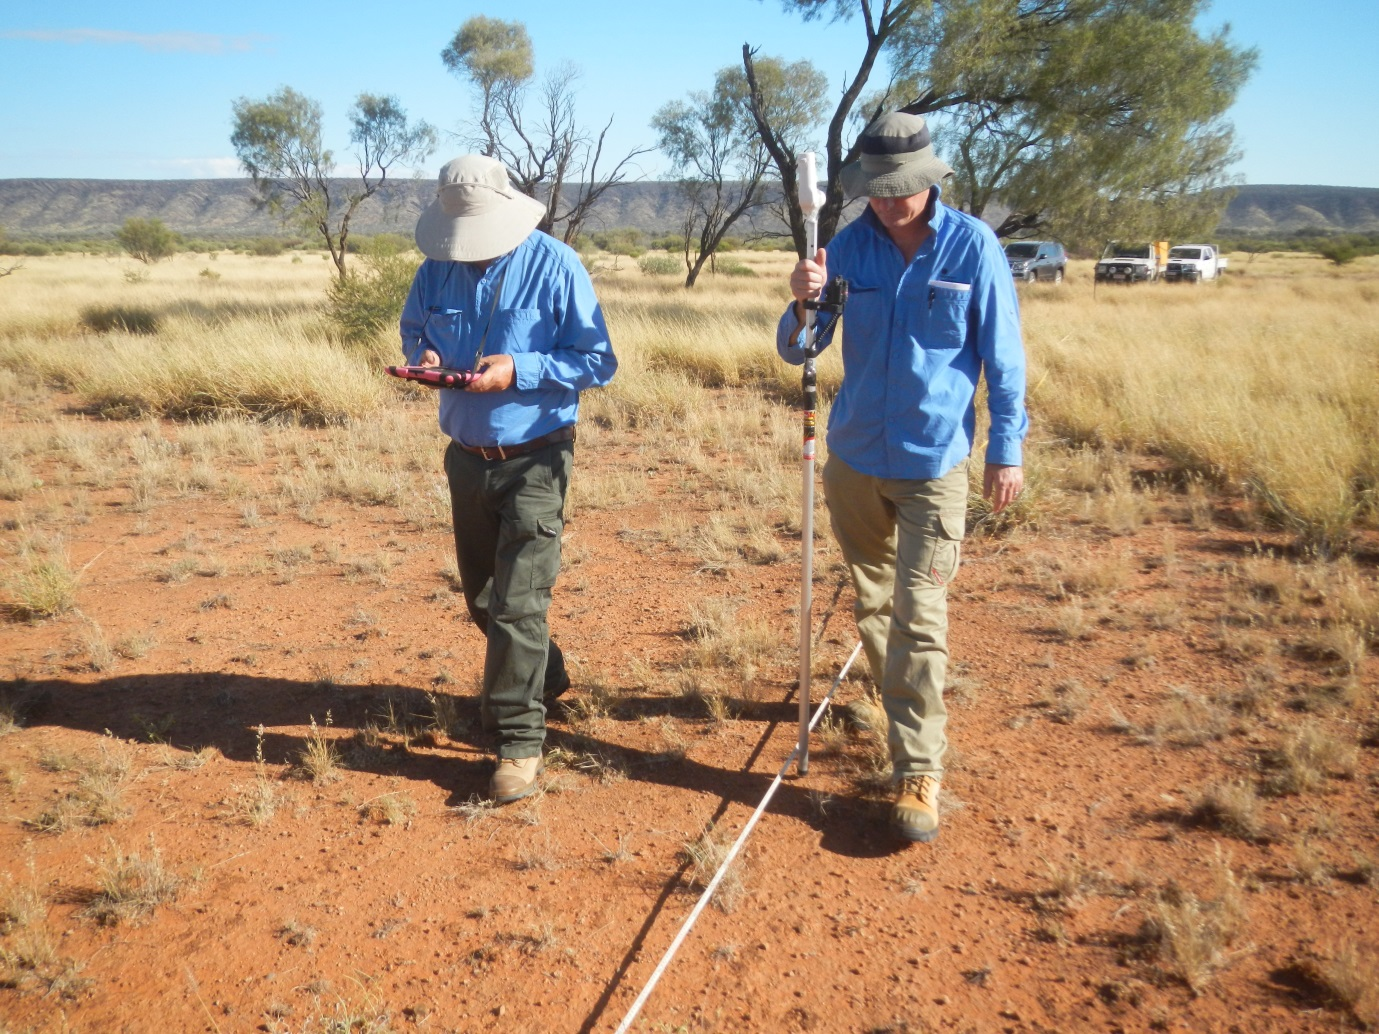 A laser pointer mounted on a pole is used to measure groundcover components at 300 points within one hectare at each measured site. Data are recorded using a tablet